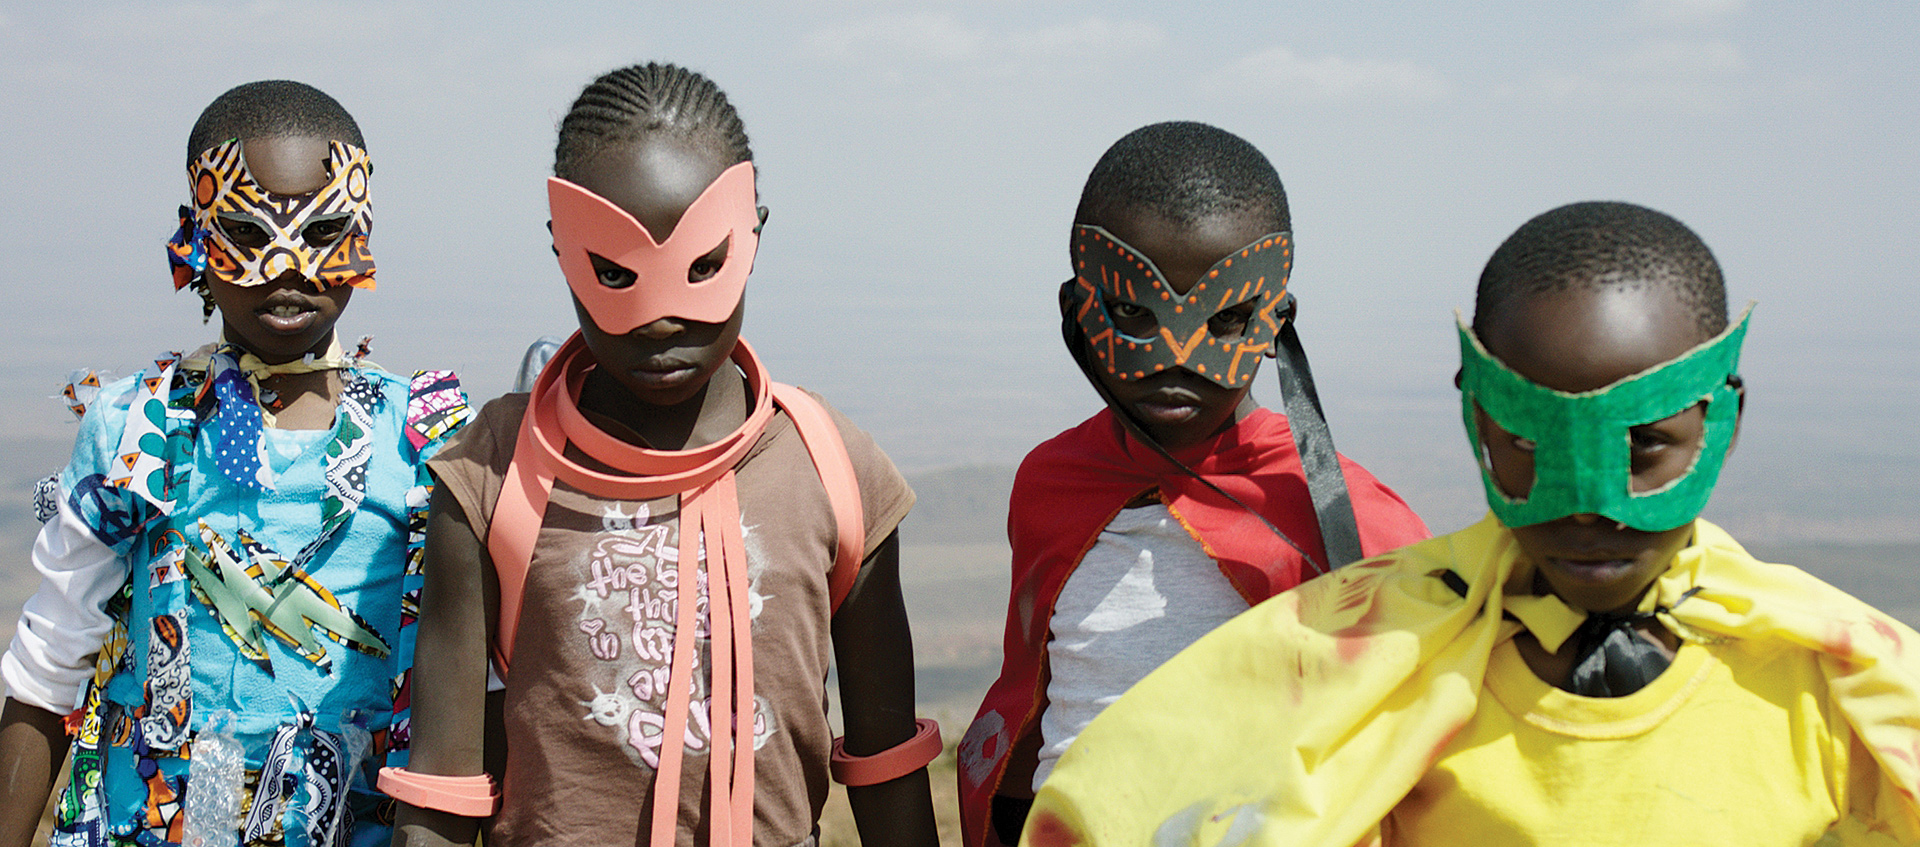 Four young Kenyan children in makeshift masks and superhero costumes, from the film Supa Modo